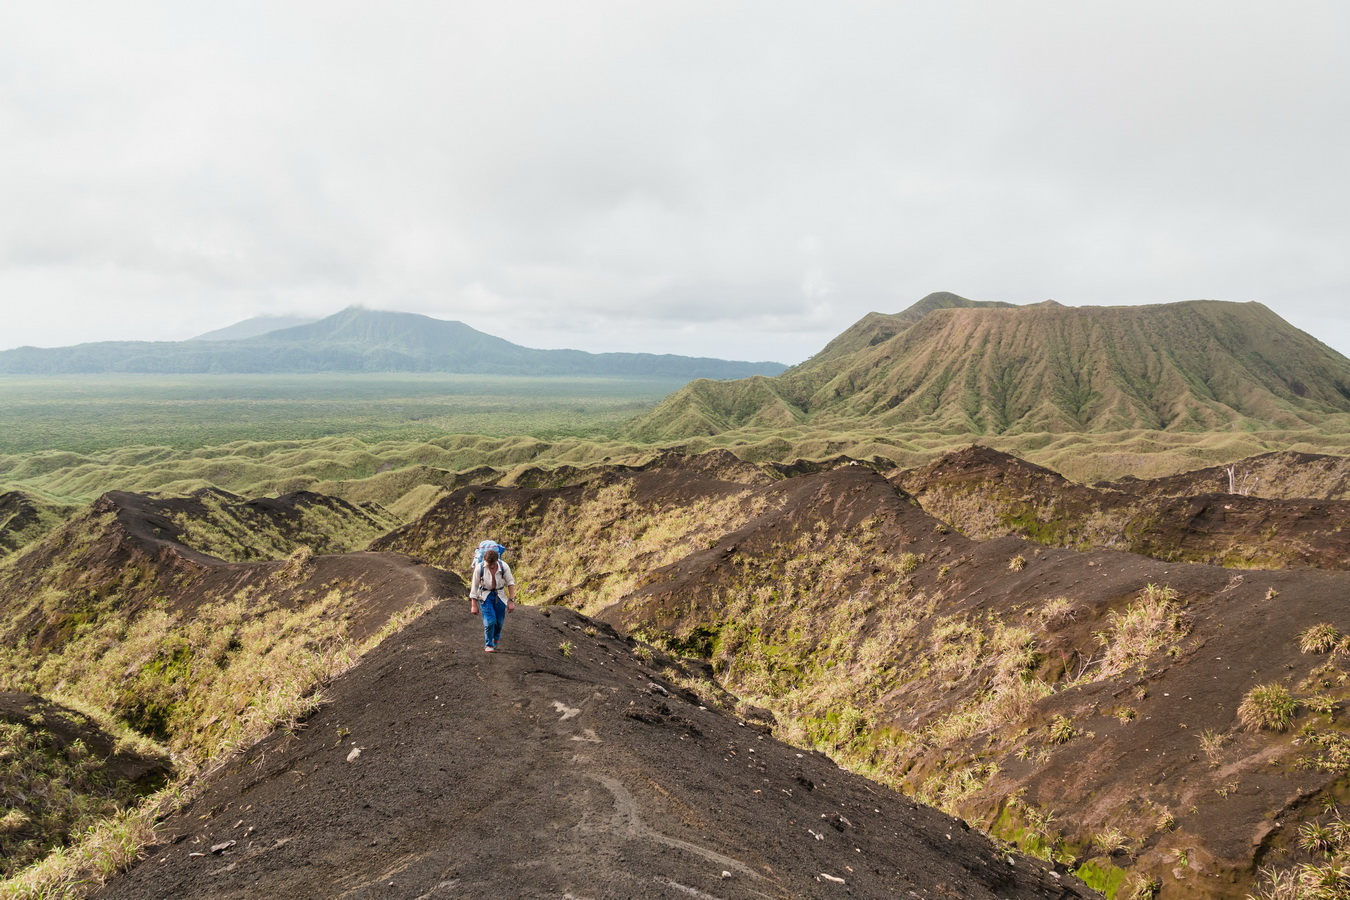 north camp,lava fields, way up,marum,crater,volcano,Ambrym, Vanuatu